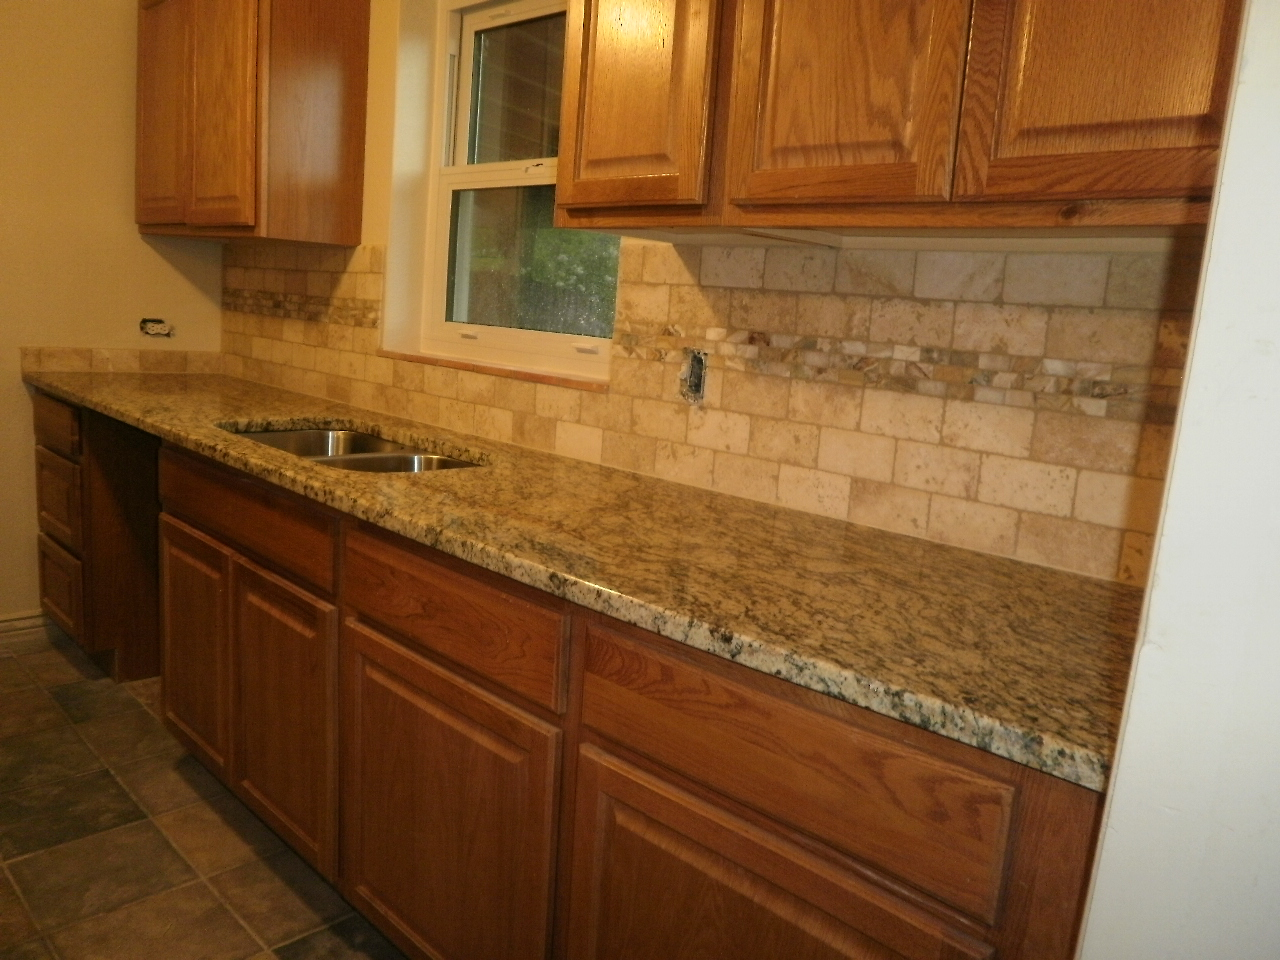 backsplash just completed 3x6 tumbled travertine backsplash with a